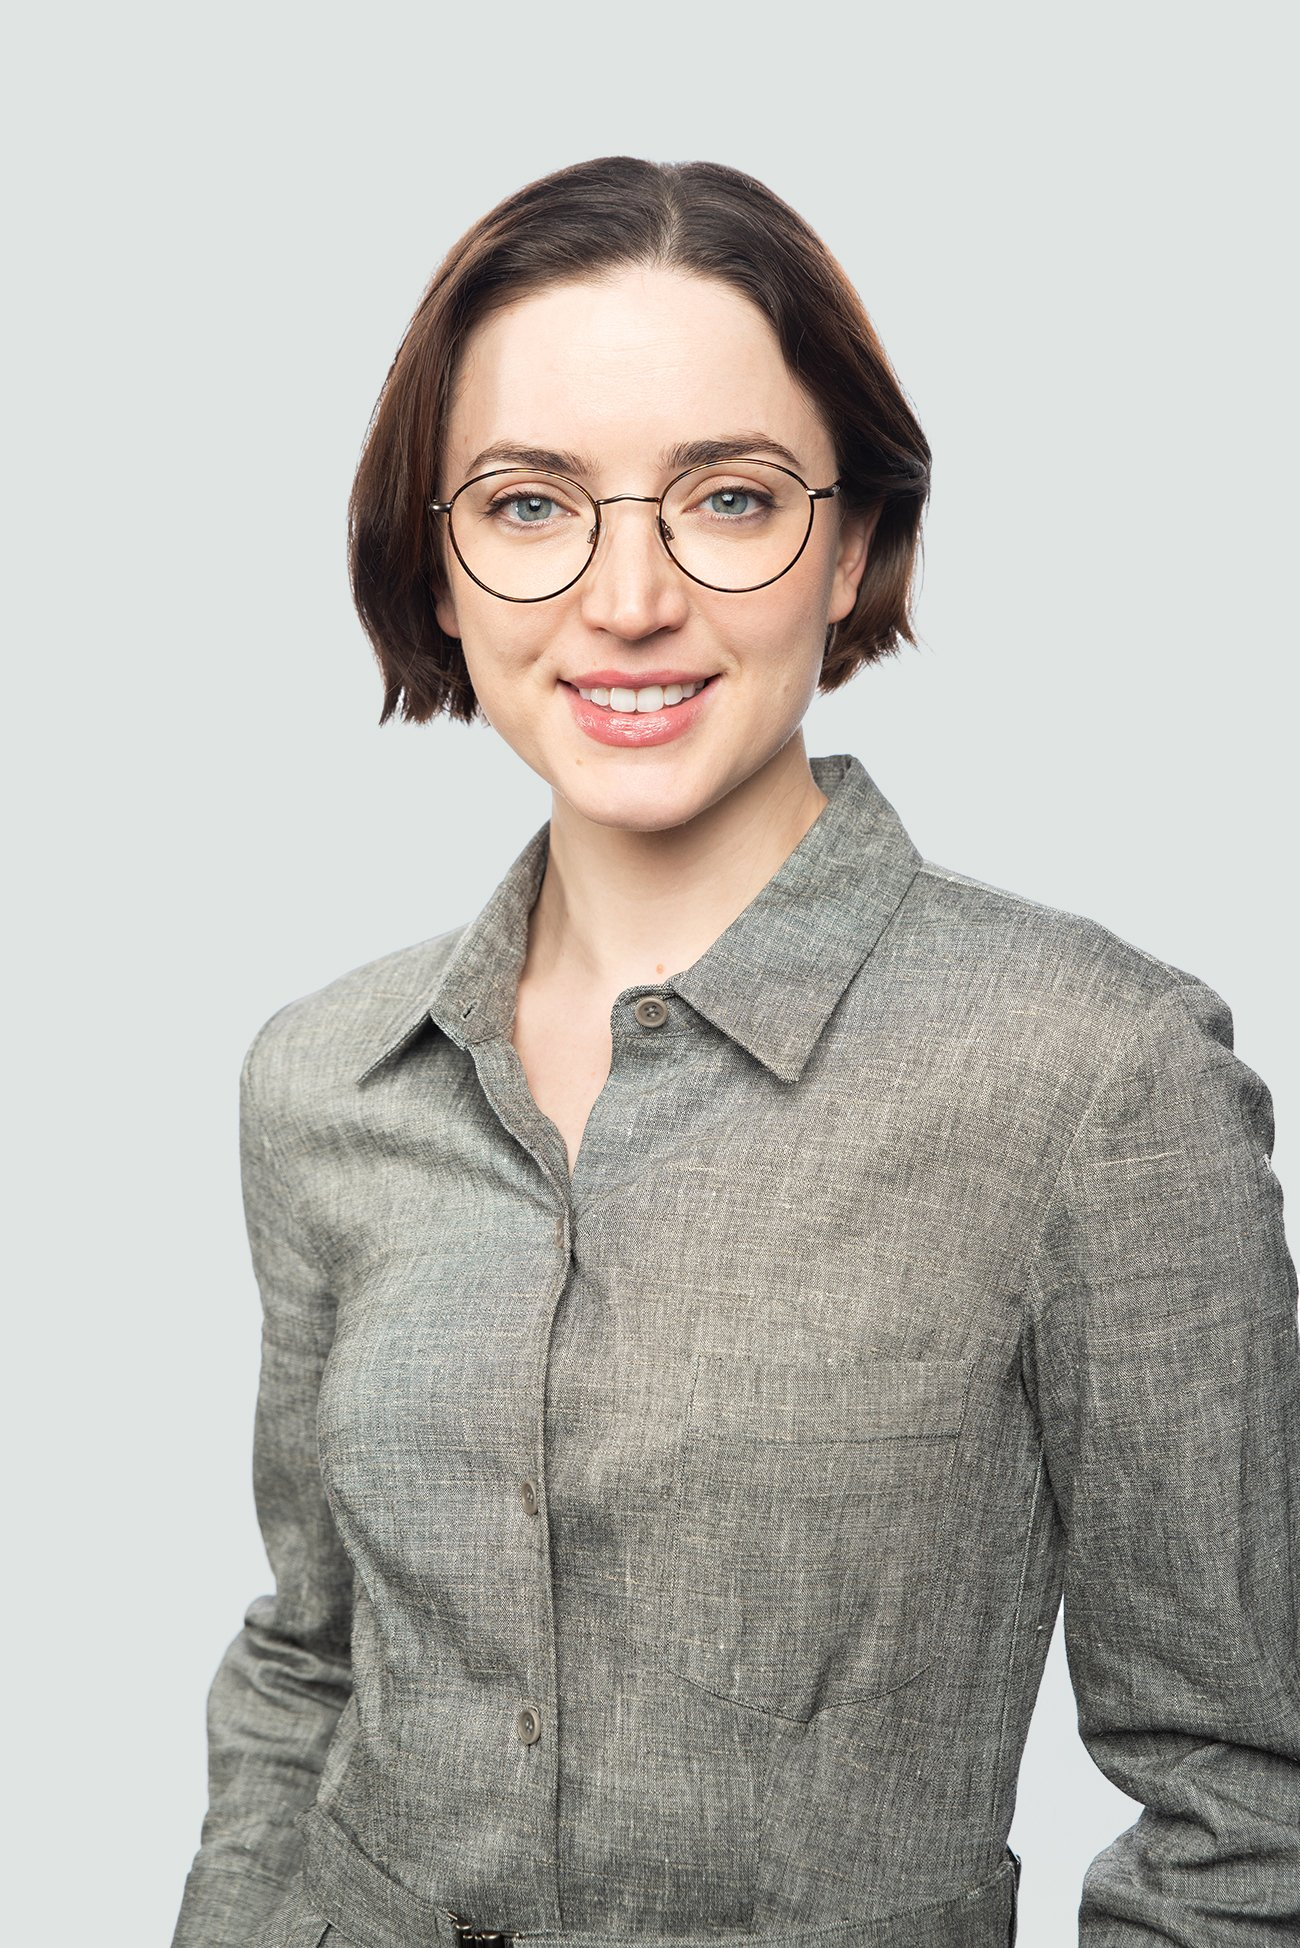 brunette woman wearing metal tortoise glasses